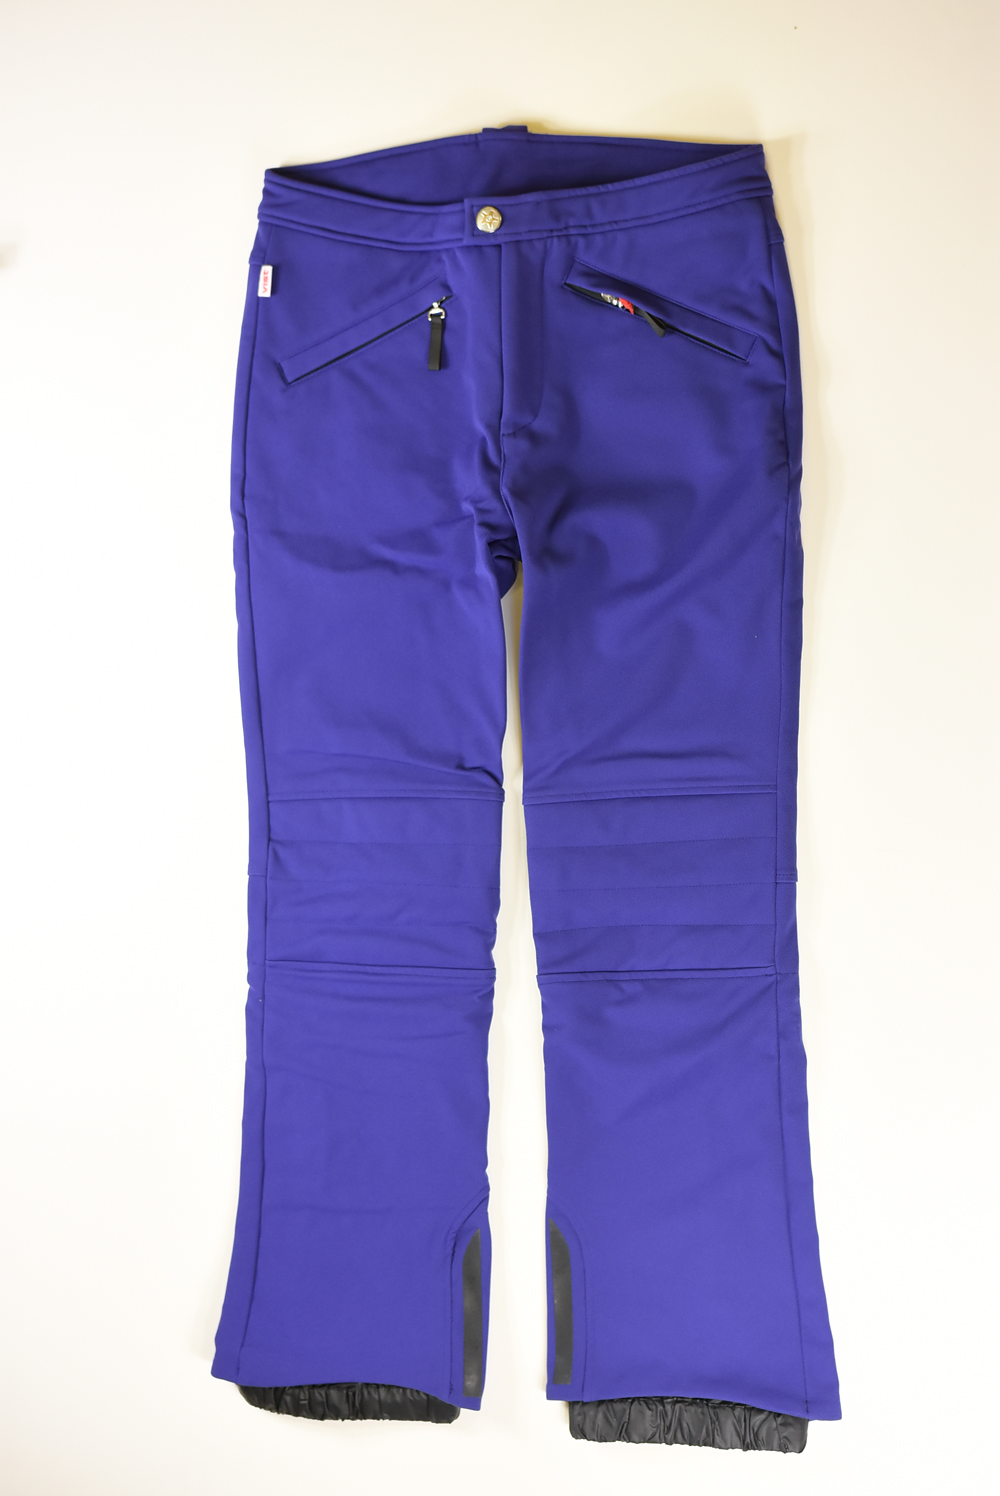 Vist Medeo Softshell Pants